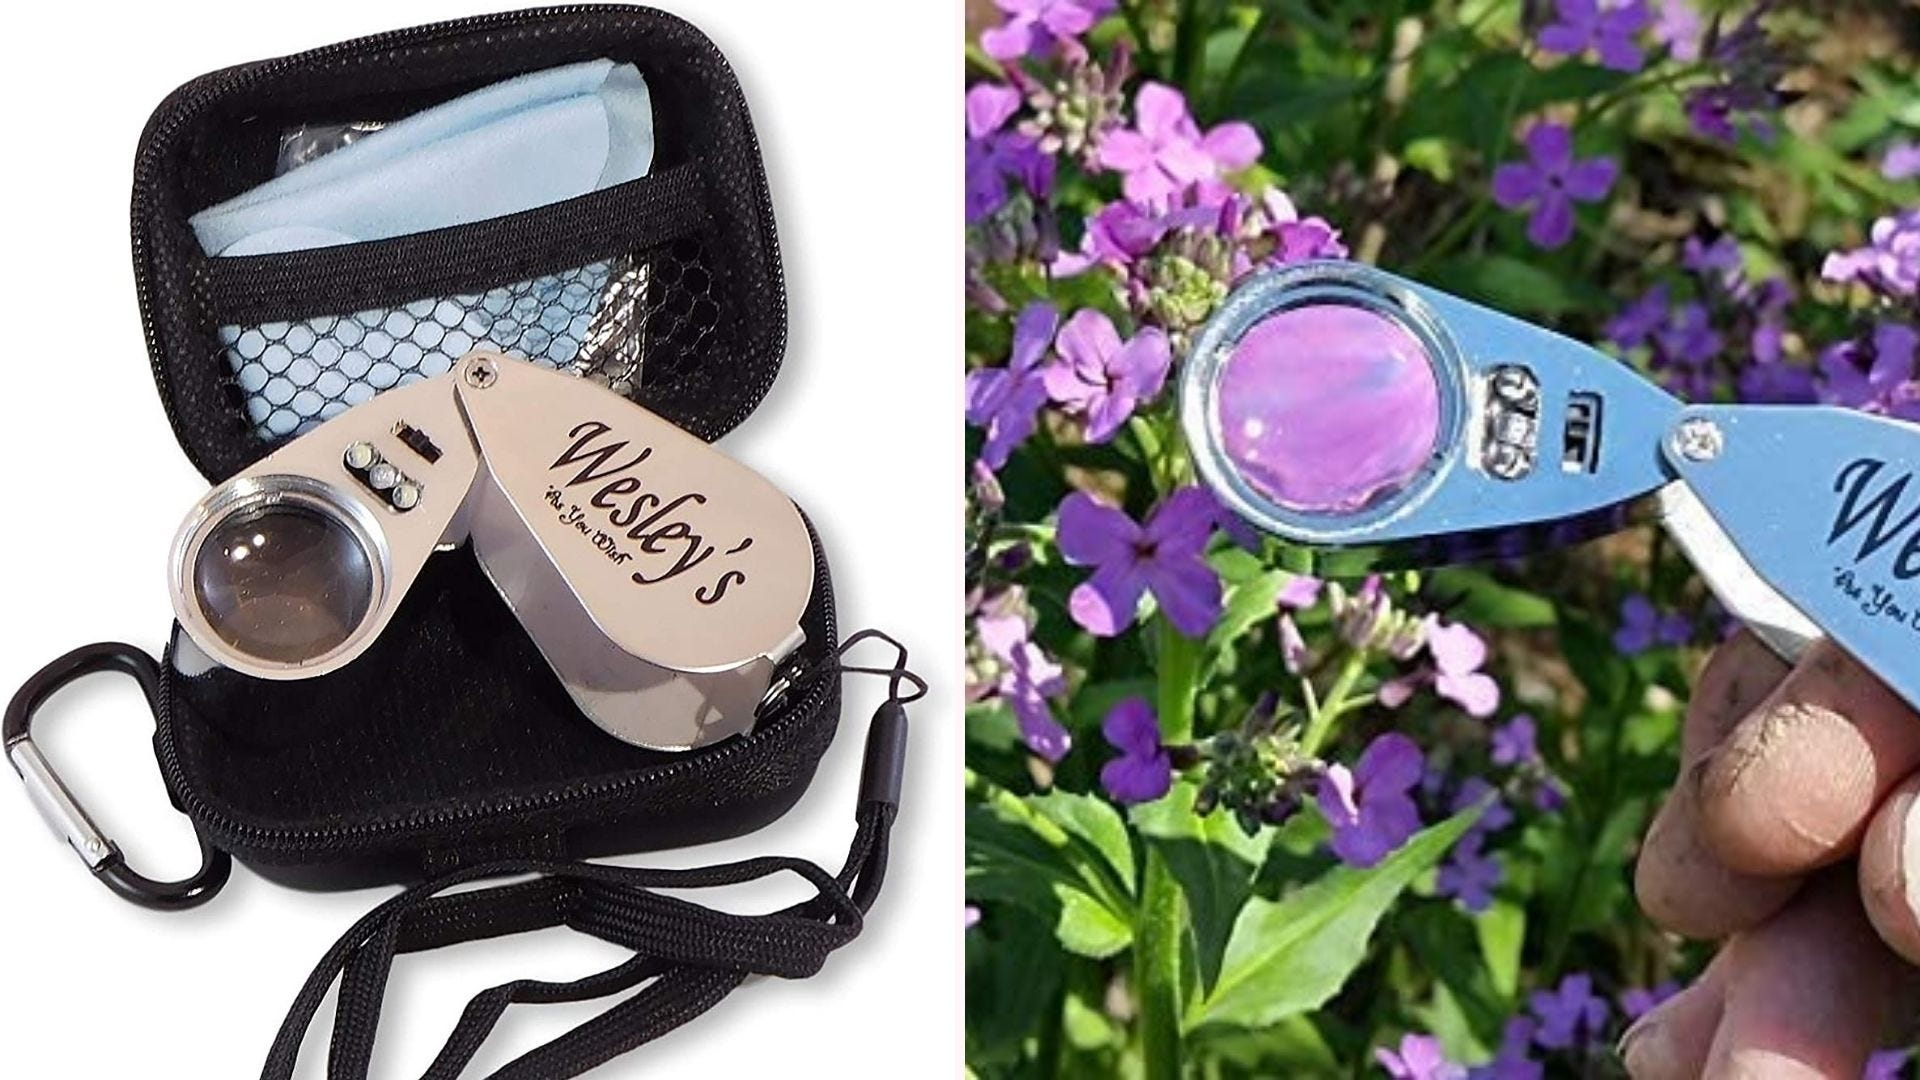 On the left, a collapsible hand lens with a 40x magnification lens sits in a travel pouch. On the right, the four-inch hand lens floats over a bed of purple flowers.